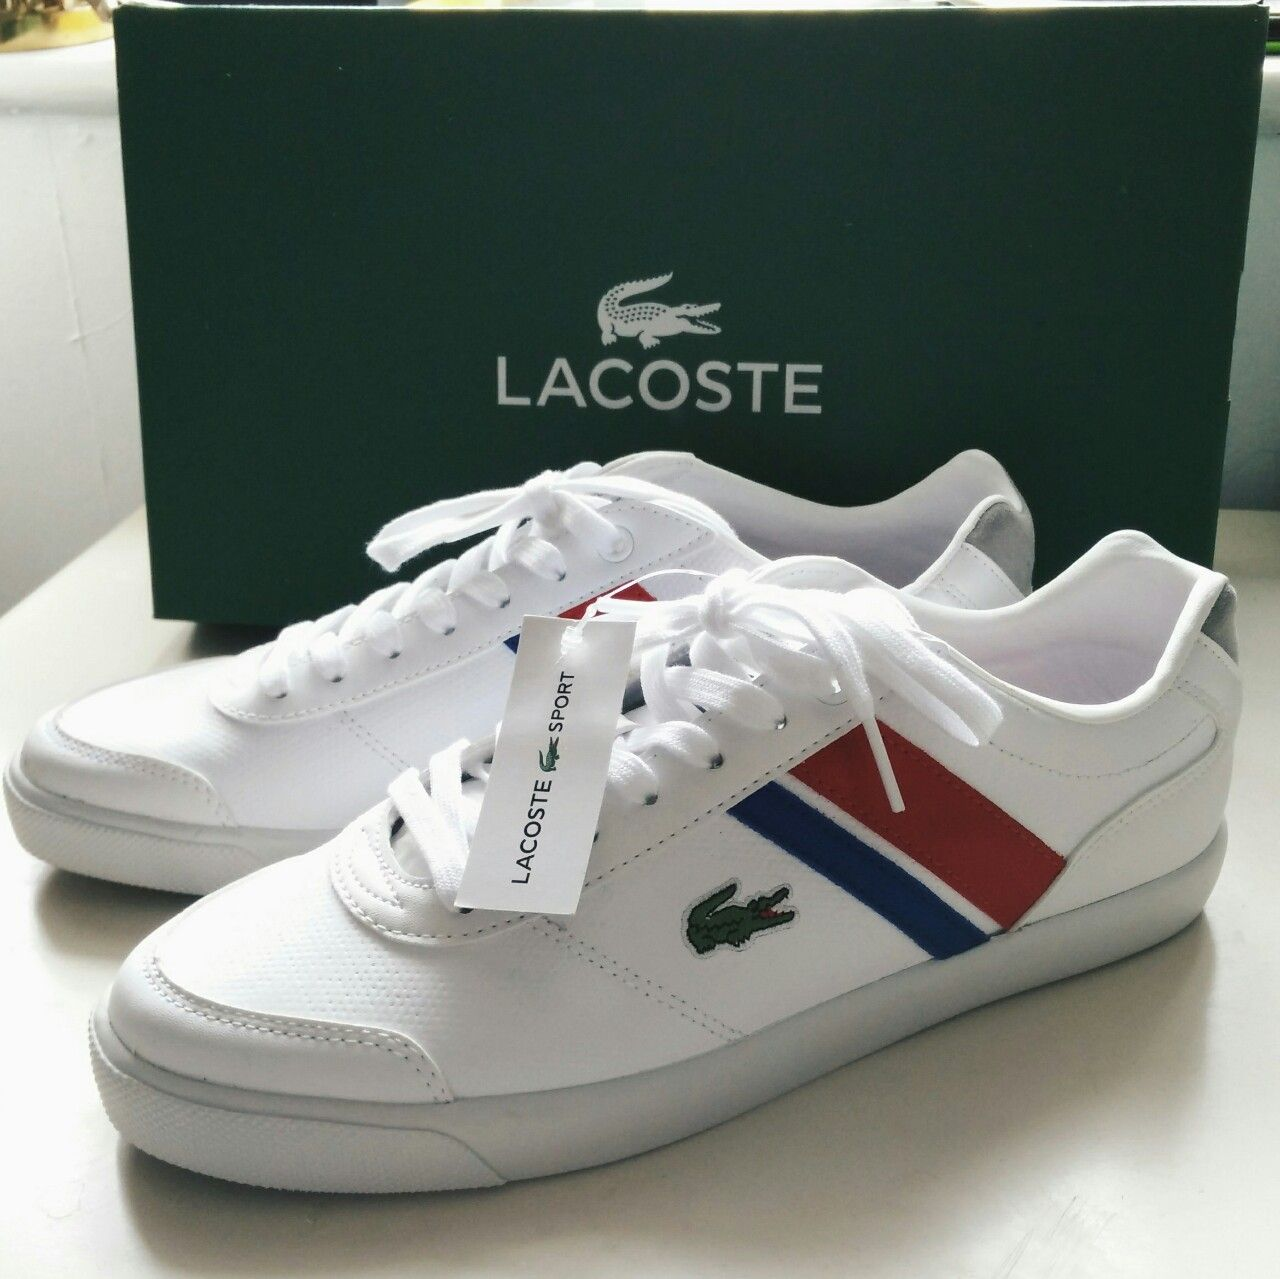 New with box UK6 Lacoste white trainers